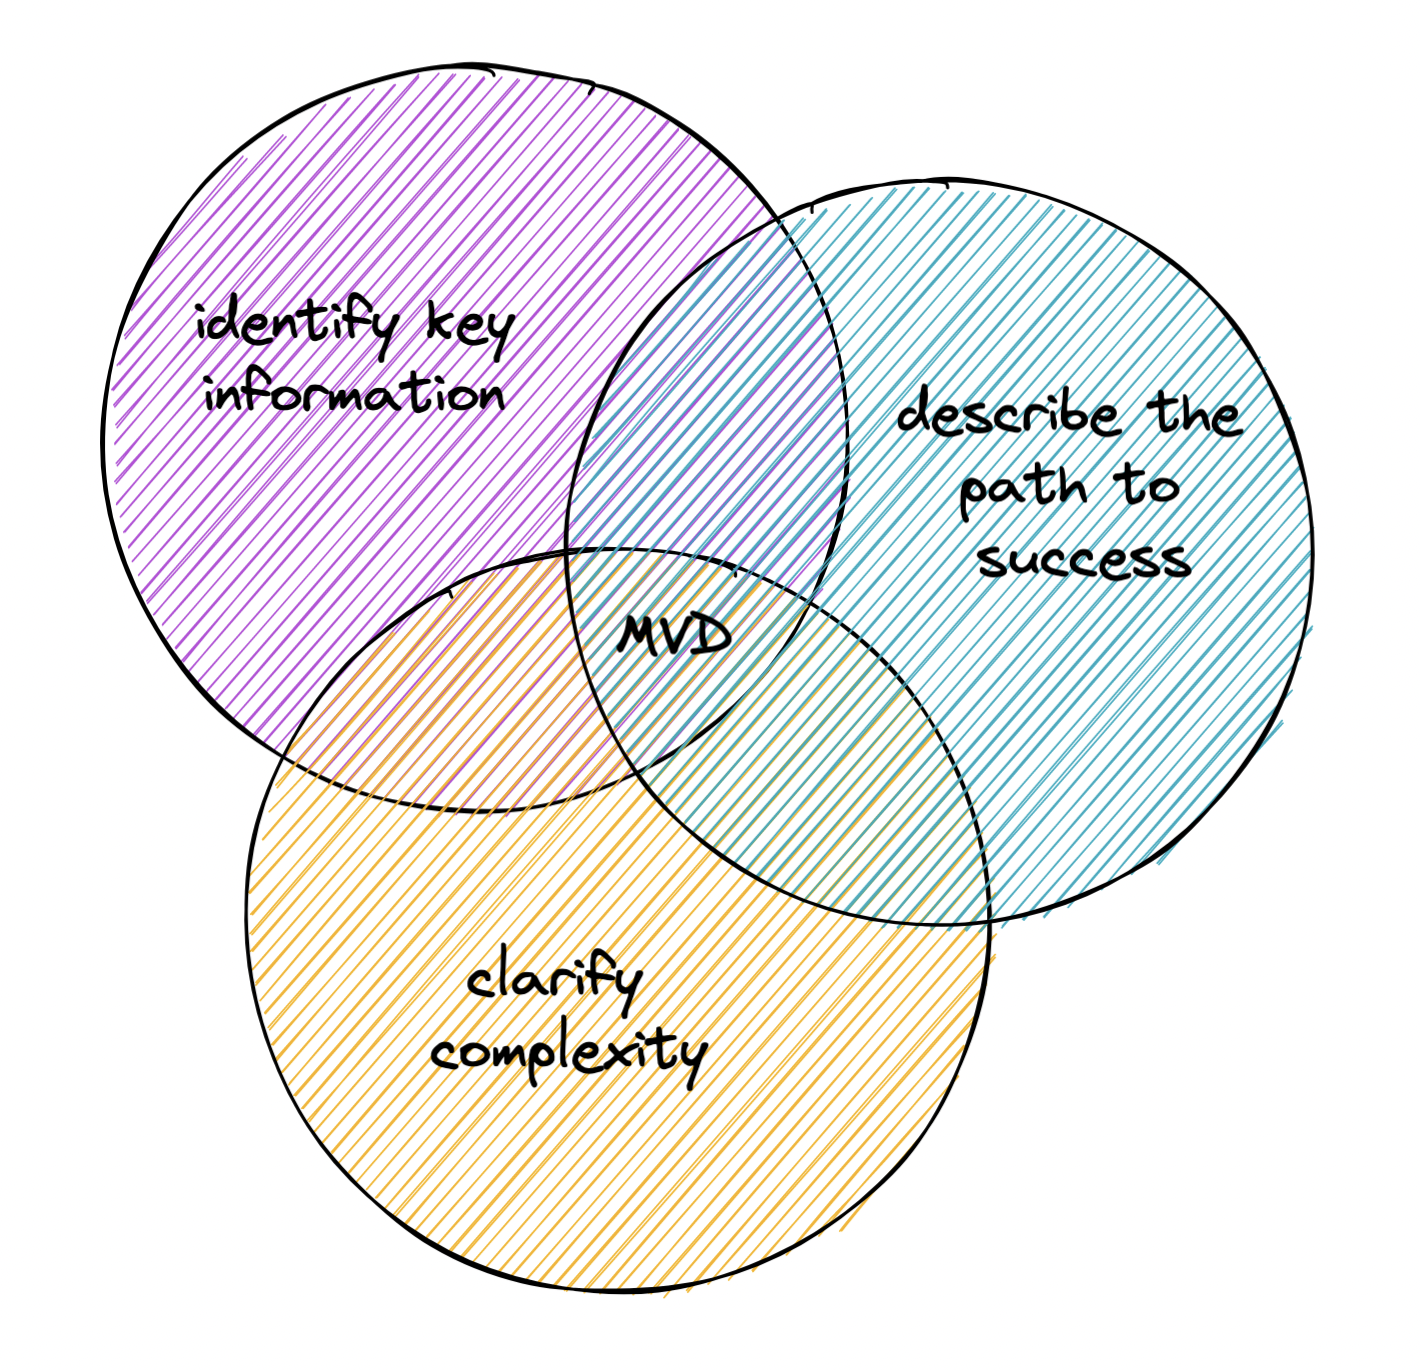 Venn diagram with three circles, one with identify key information, one with describe the path to success, and a third with clarify complexity, with MVD at the intersection of all three.